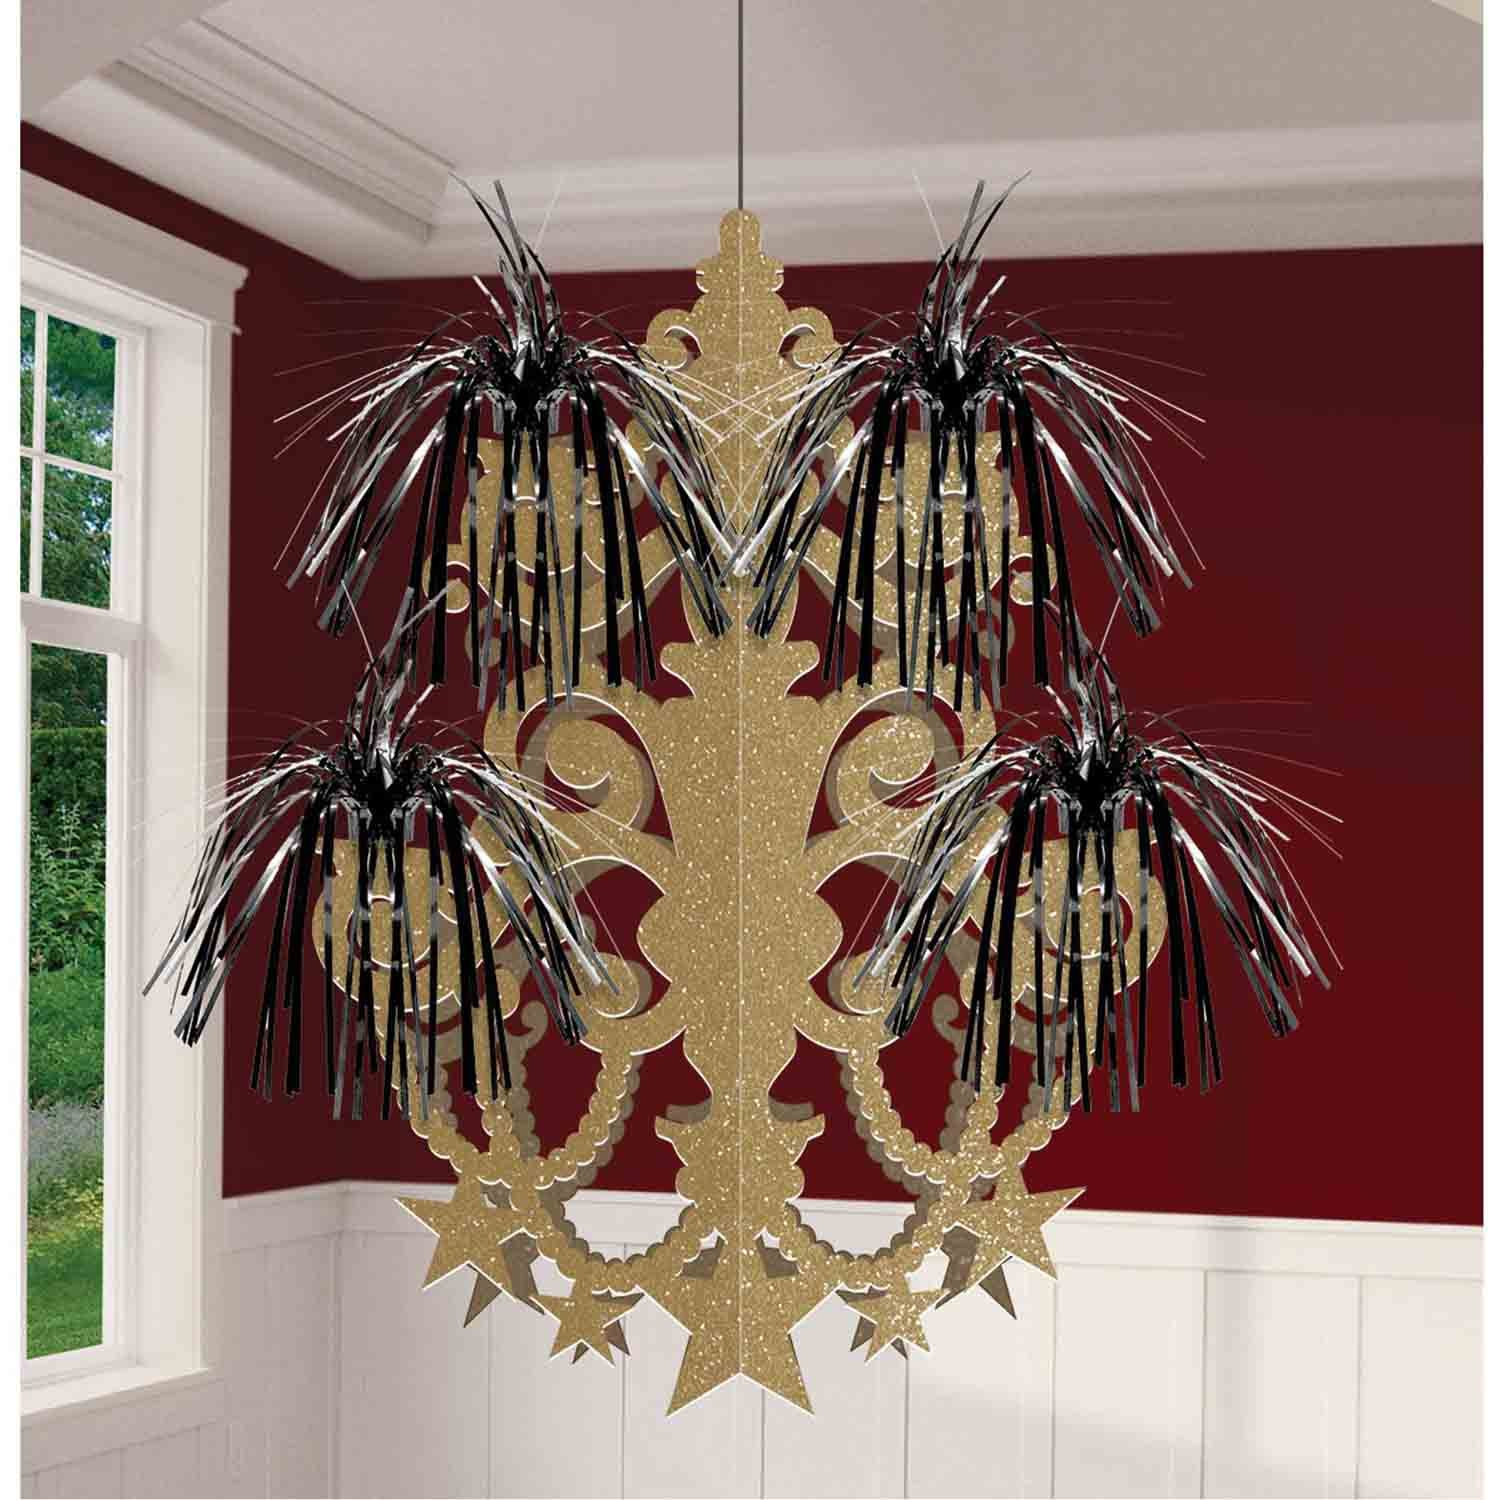 Glitz & Glam Fireworks Chandelier Hanging Decorations Glittered & Foil Sprays